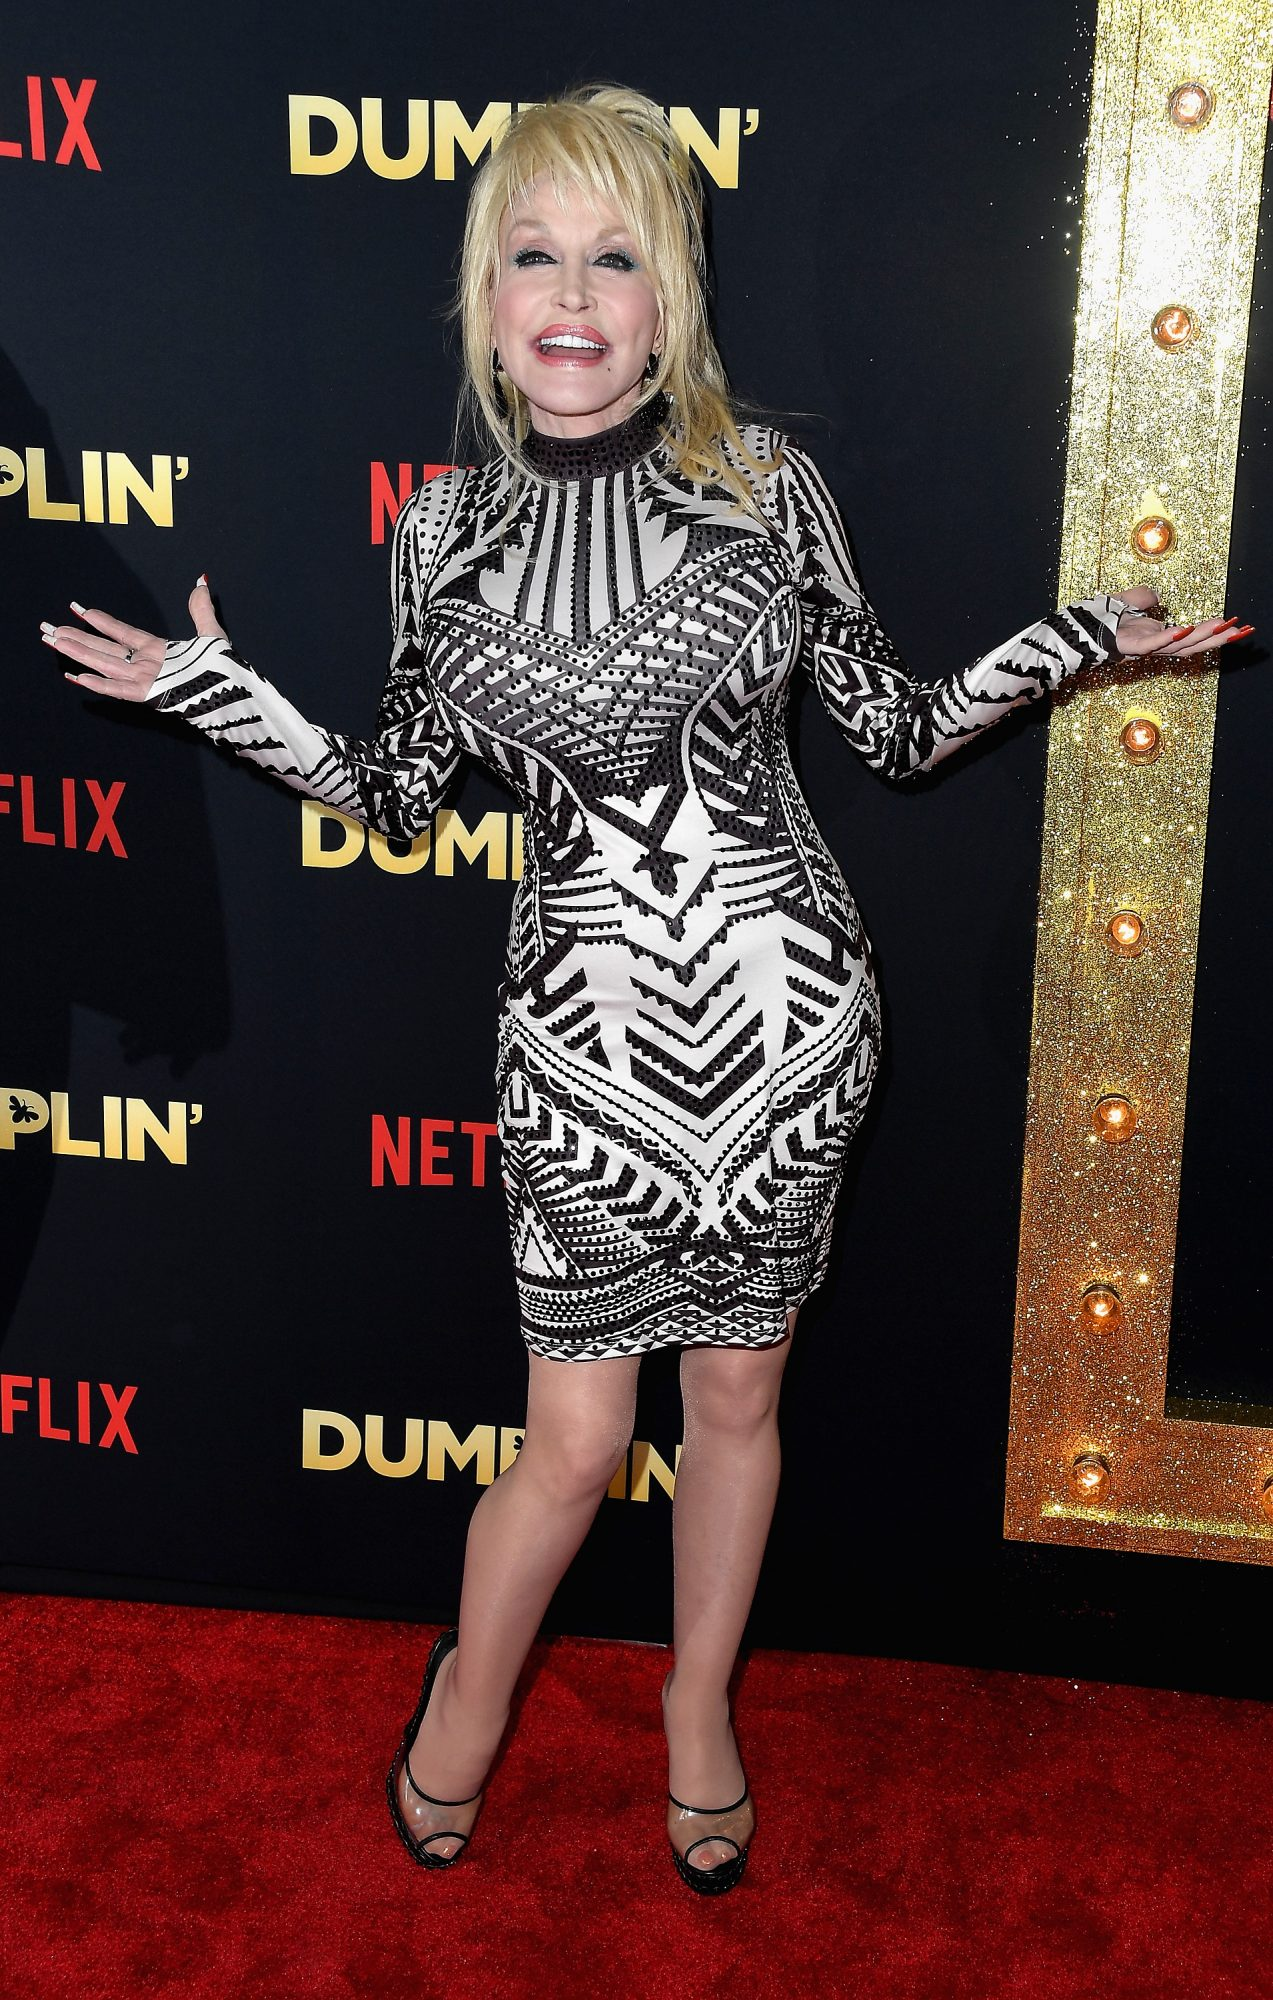 Dolly Parton Dumplin Premiere